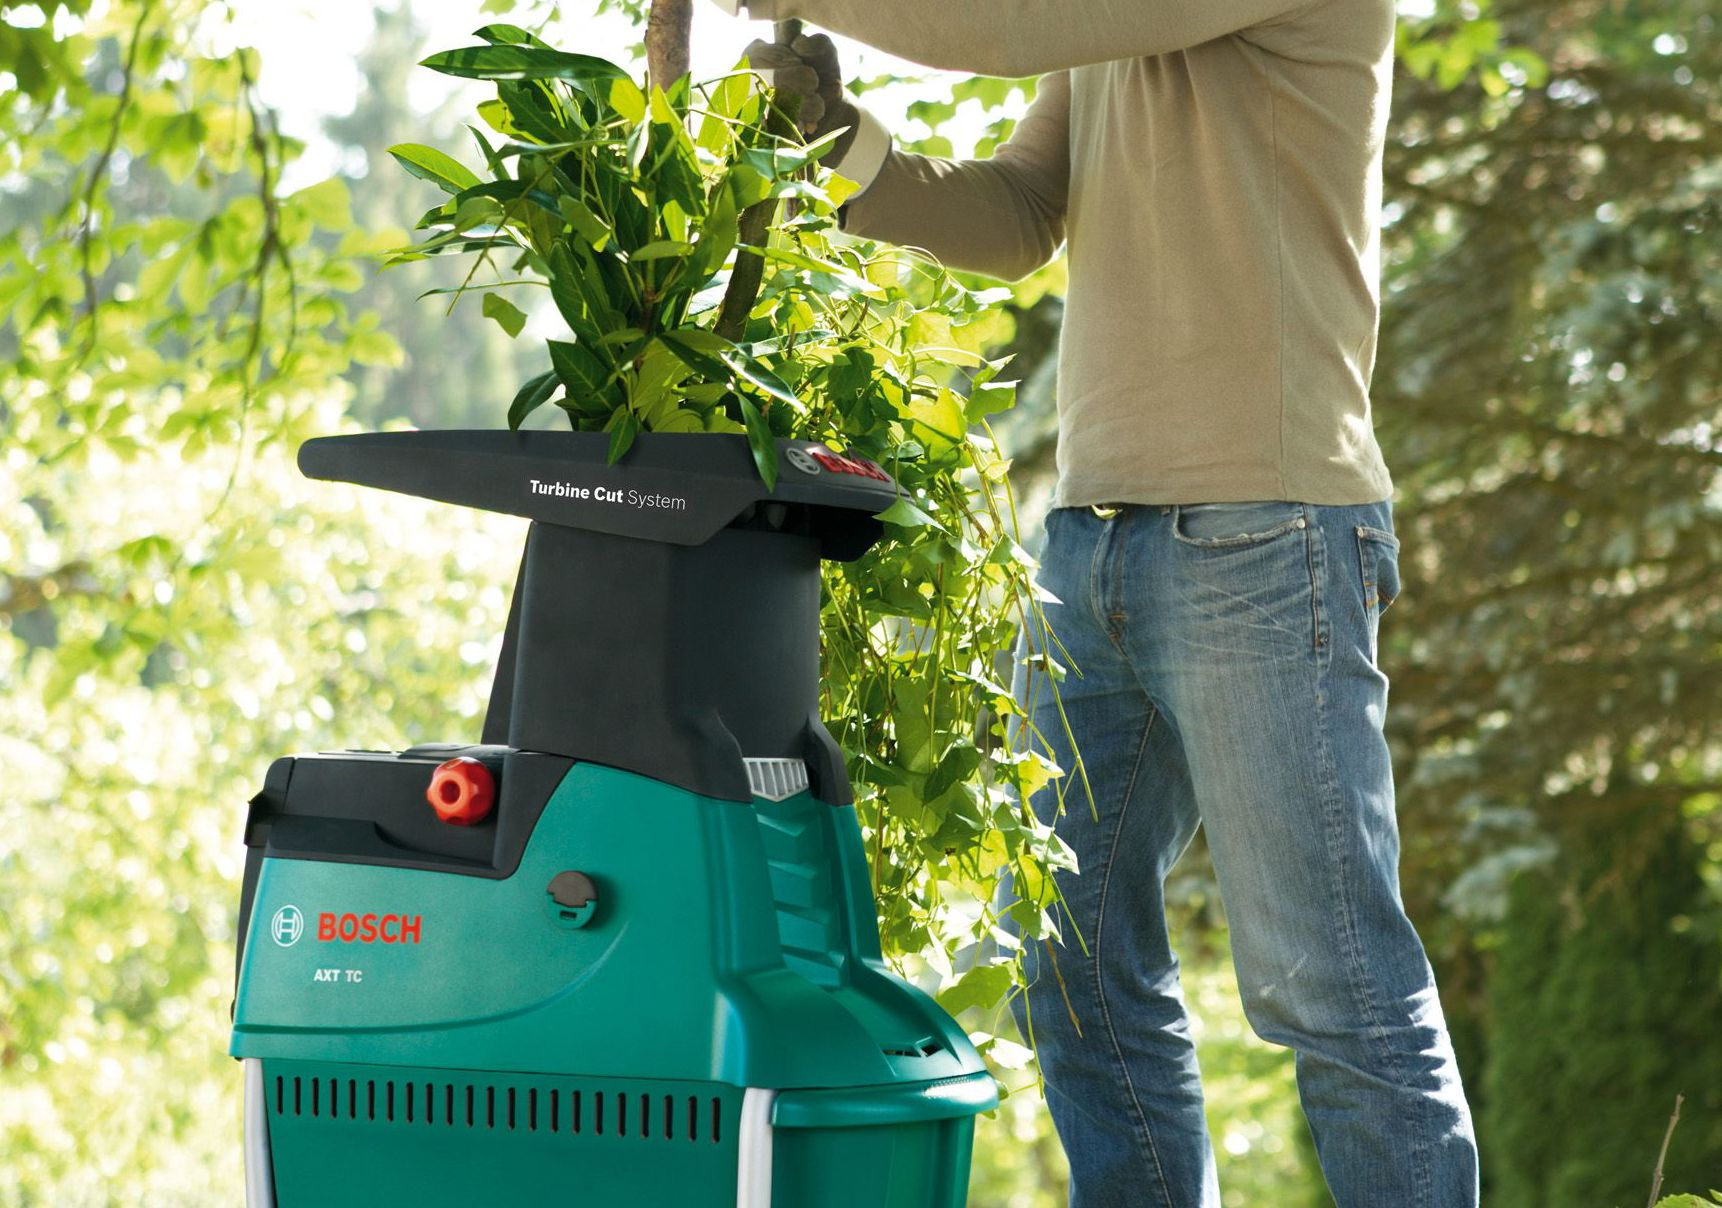 Buyers guide to garden shredders Help Ideas DIY at BQ